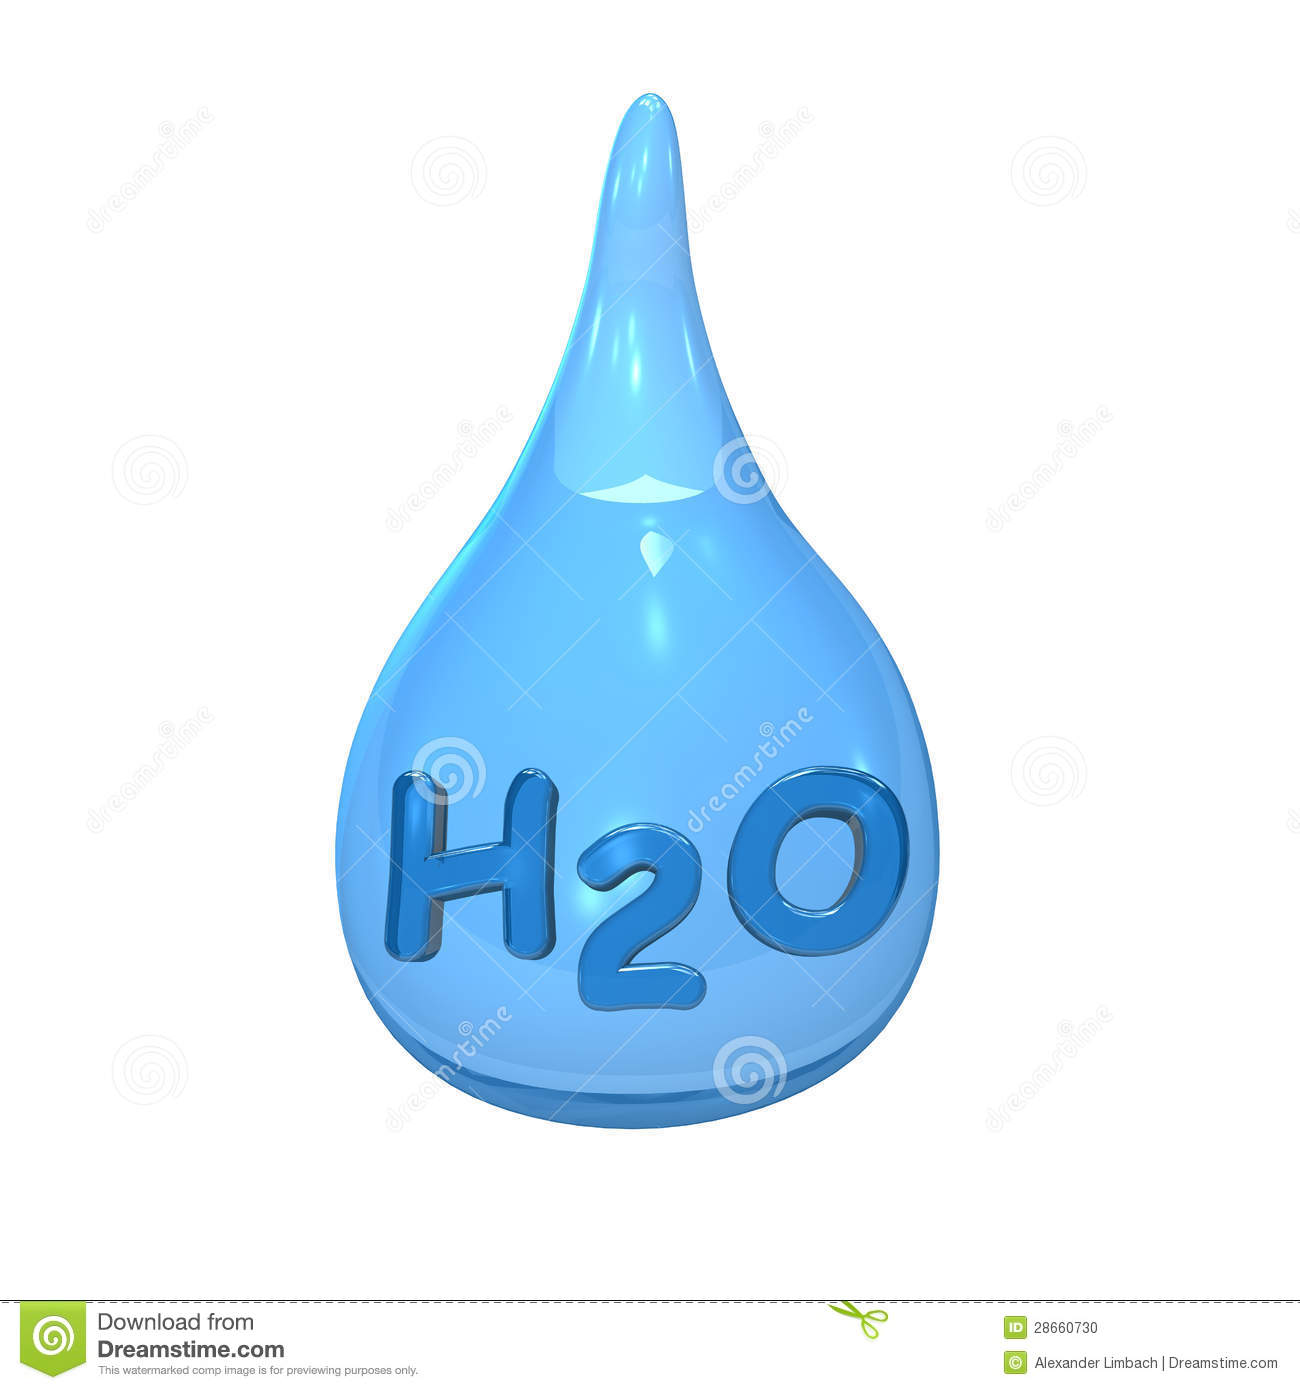 Blue water drop with text H2O on the white background.